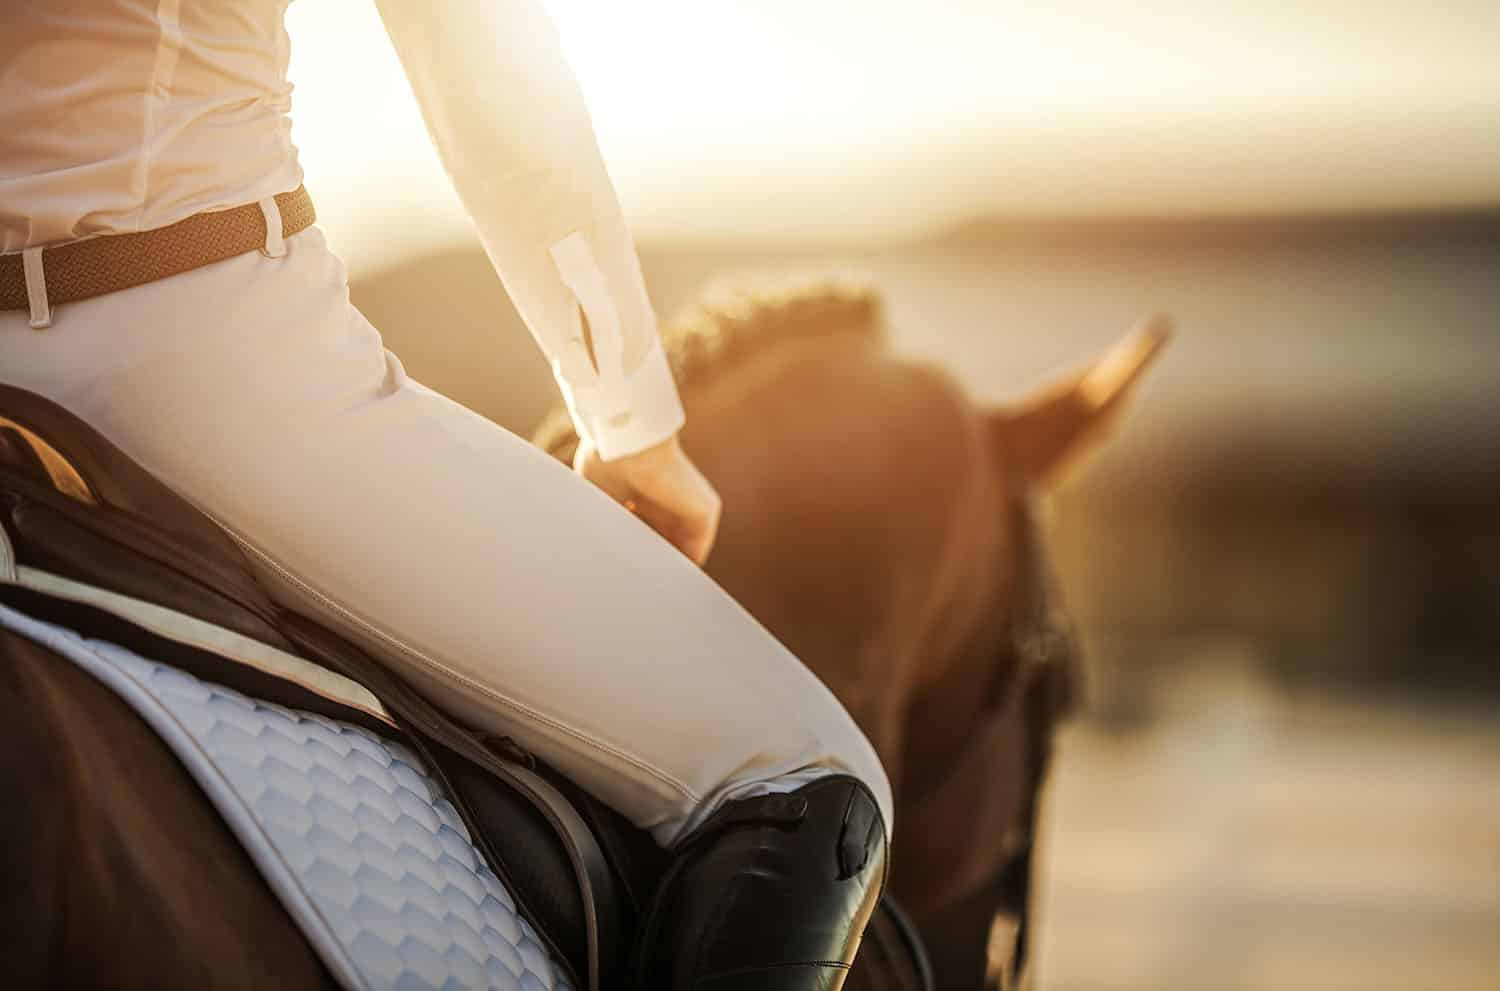 Is it time for you to take your business reins?